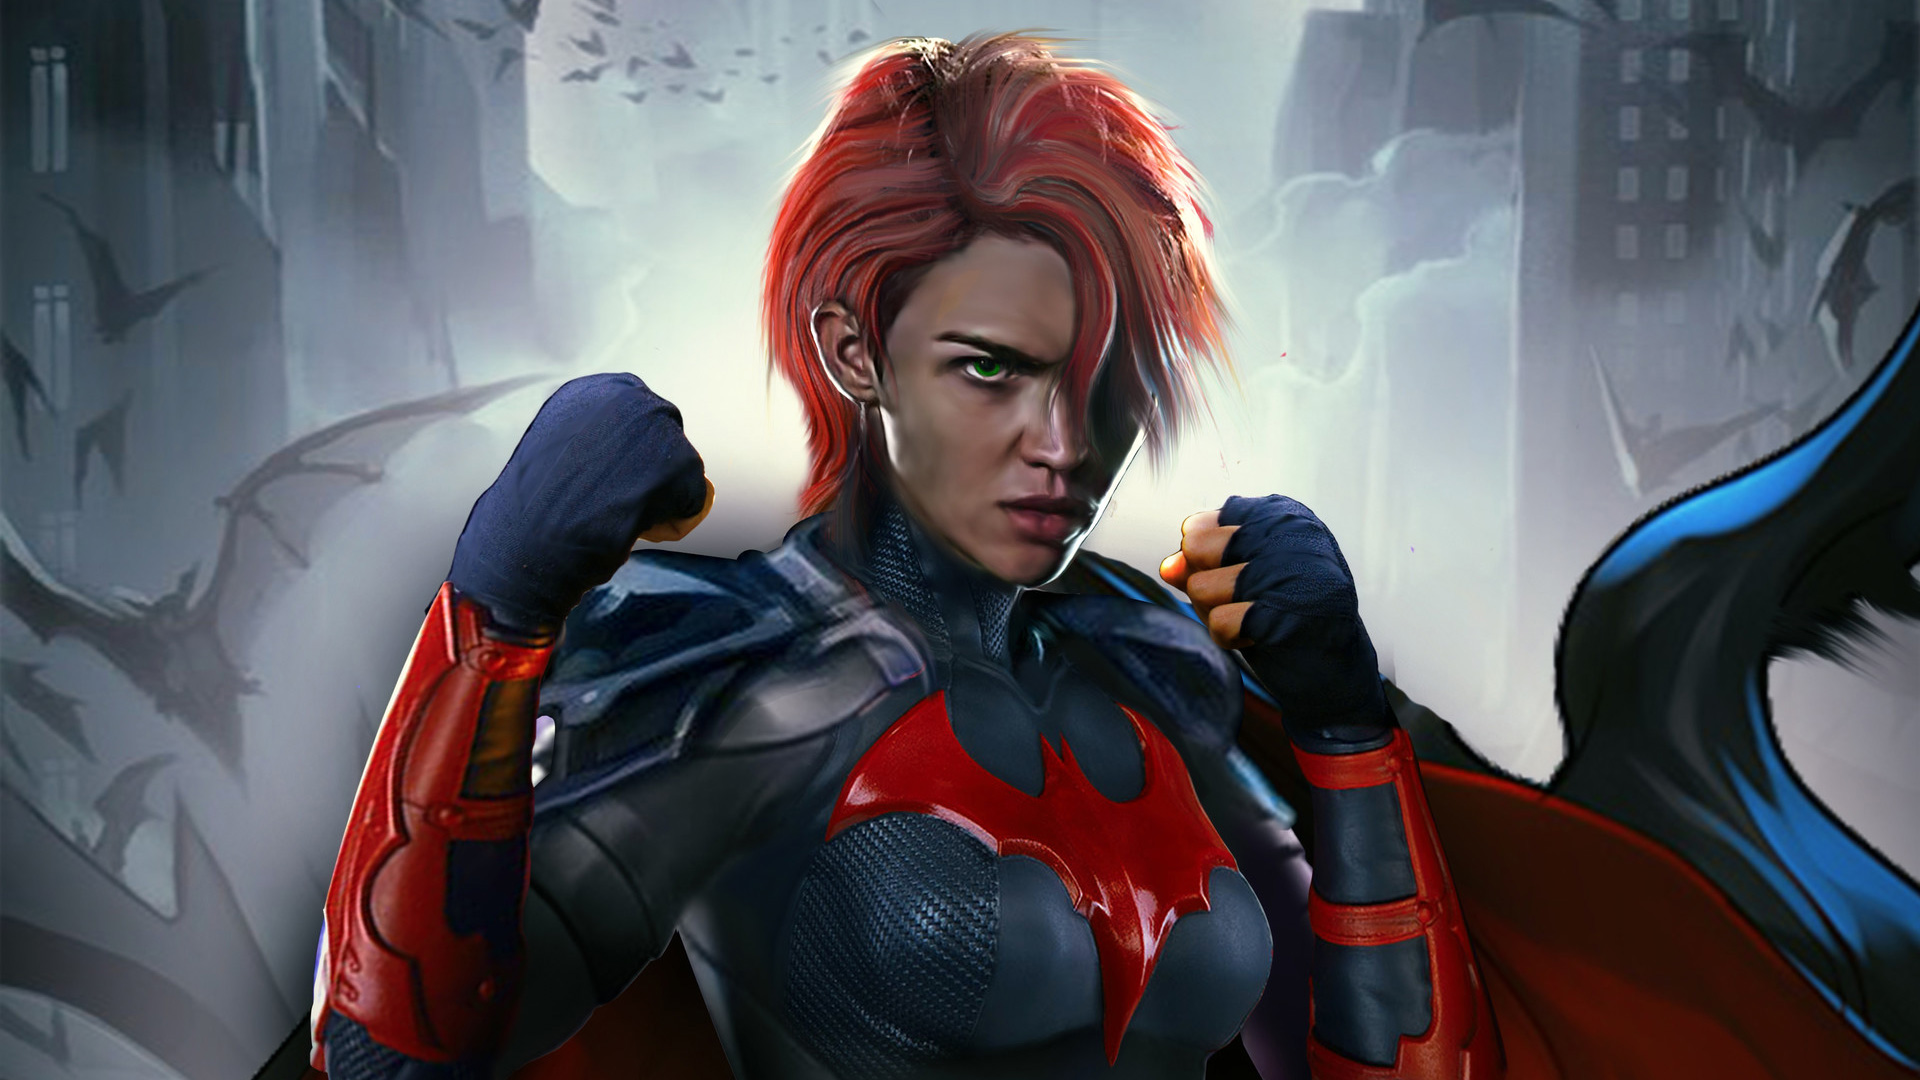 Ruby Rose Batwoman Suit Arrow Elseworlds